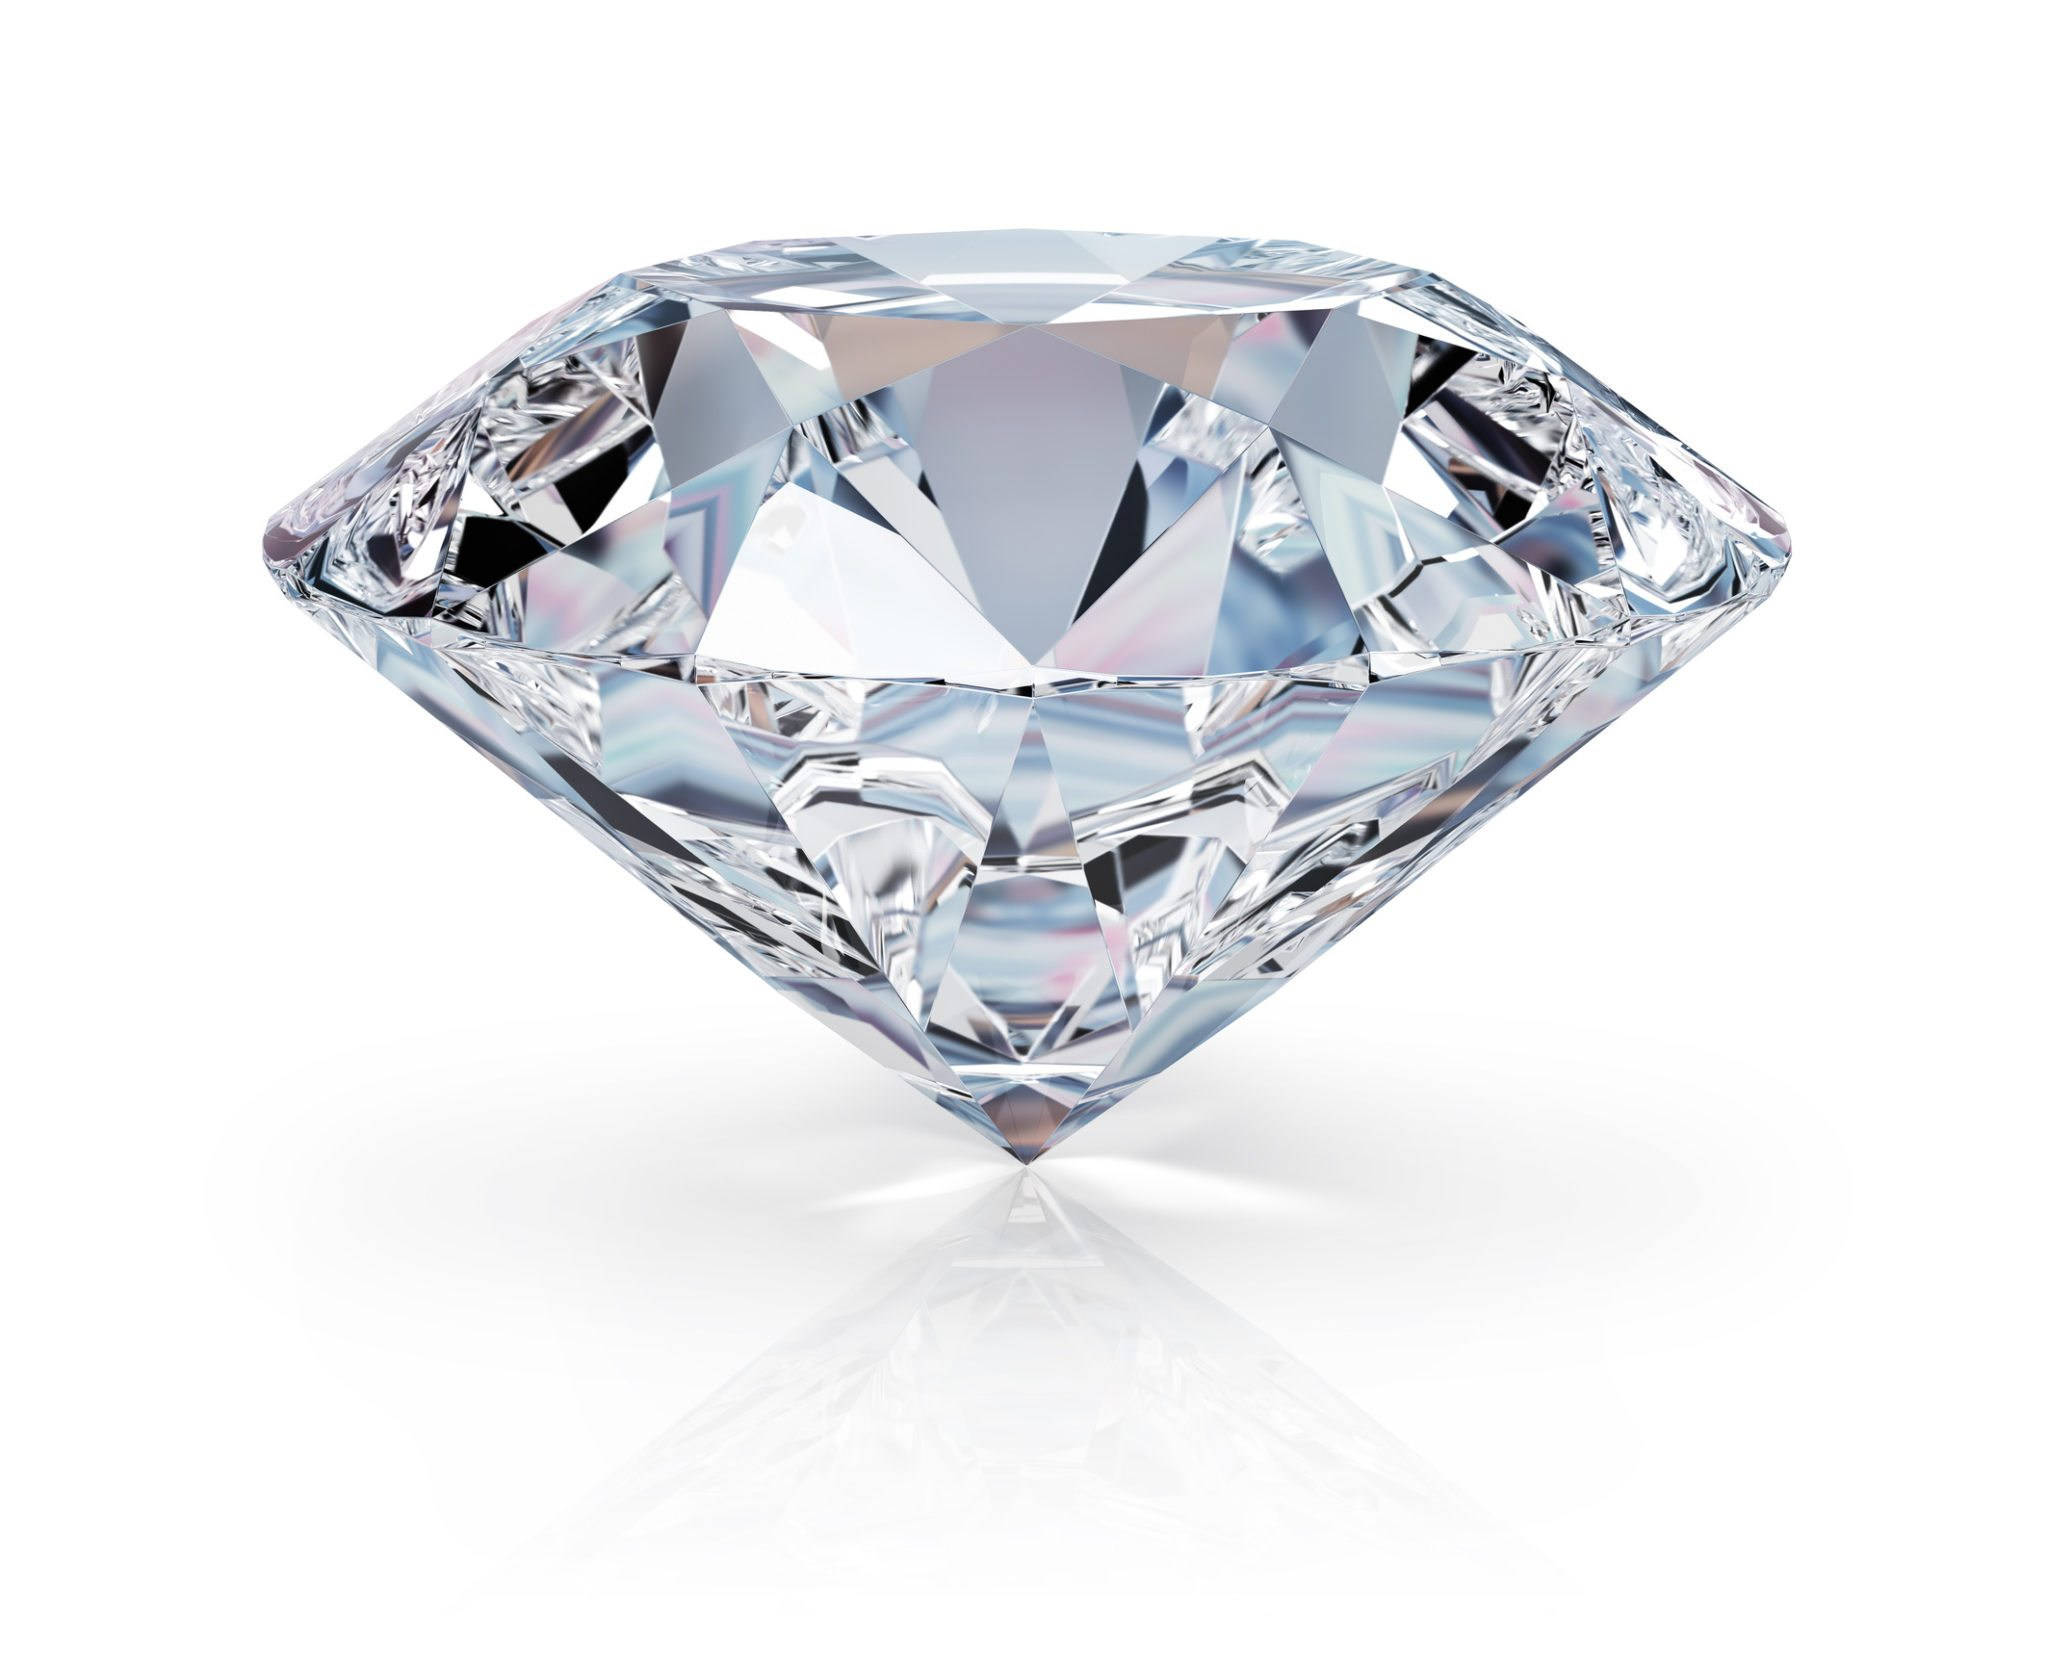 The Round Cut Diamond